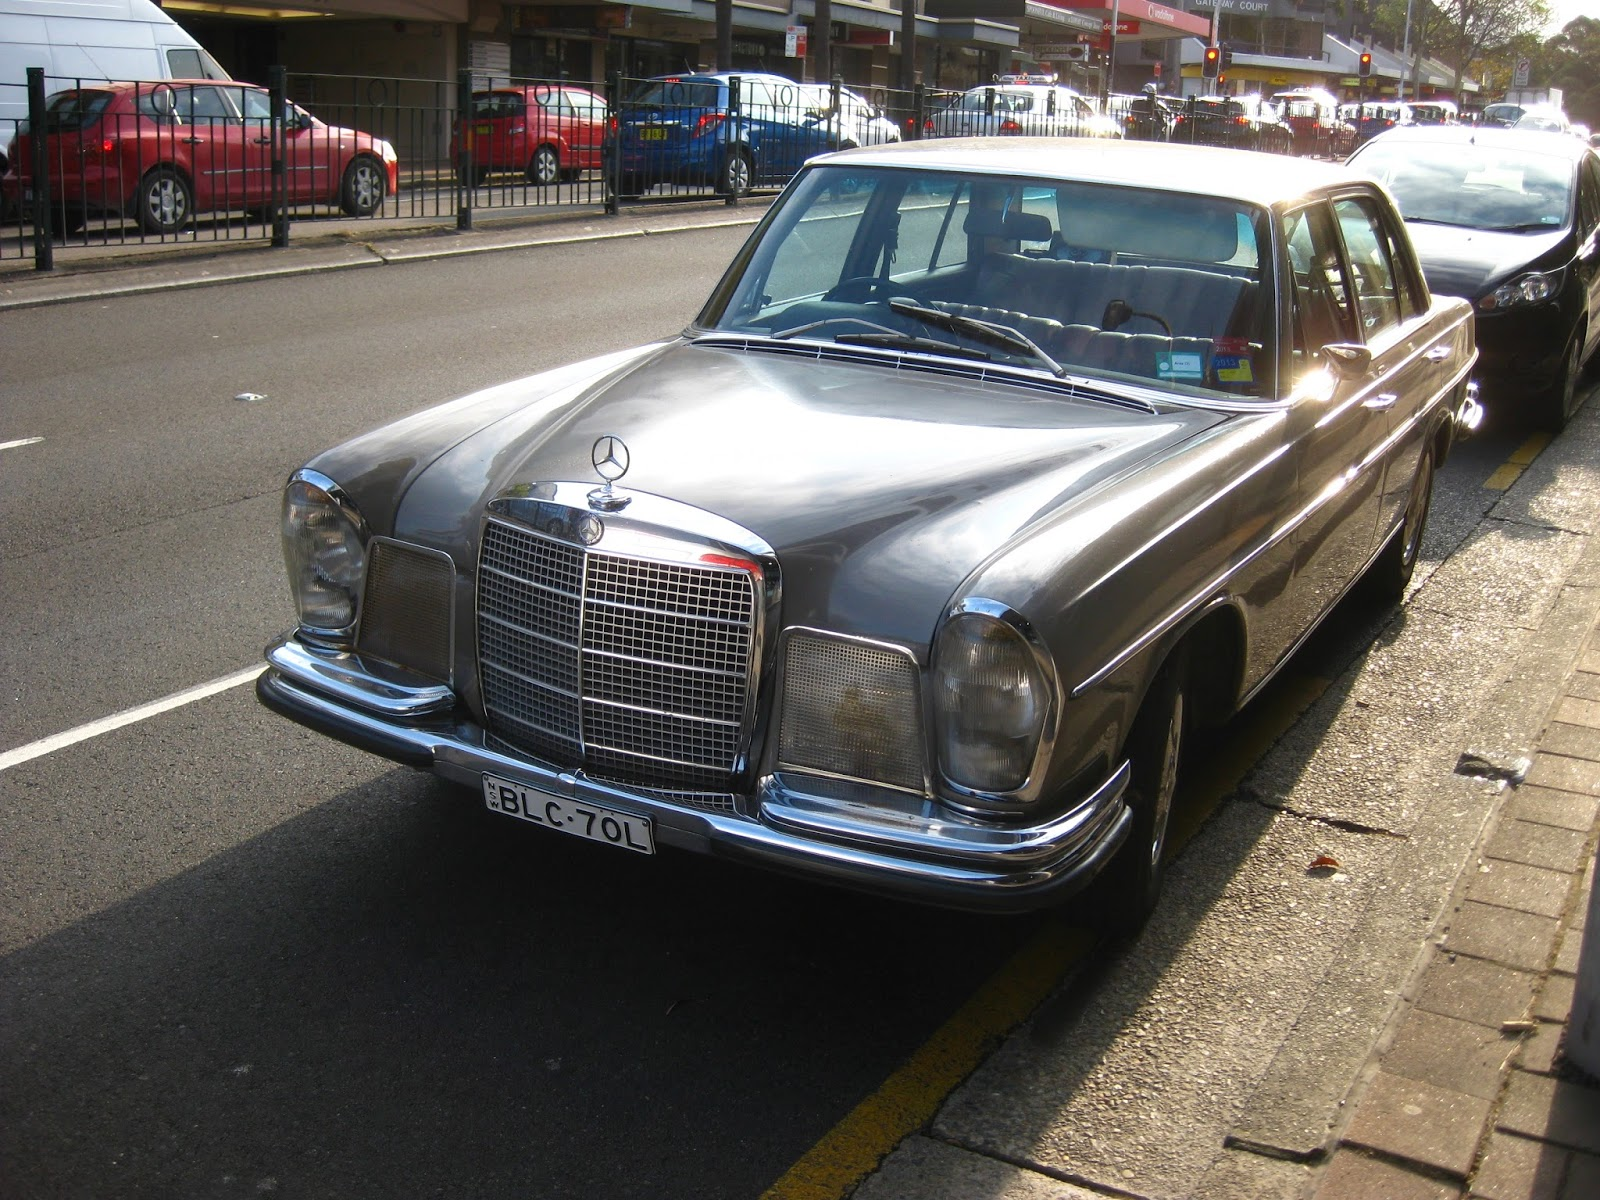 Aussie old parked cars 1968 mercedes benz w108 280 s for Mercedes benz 108